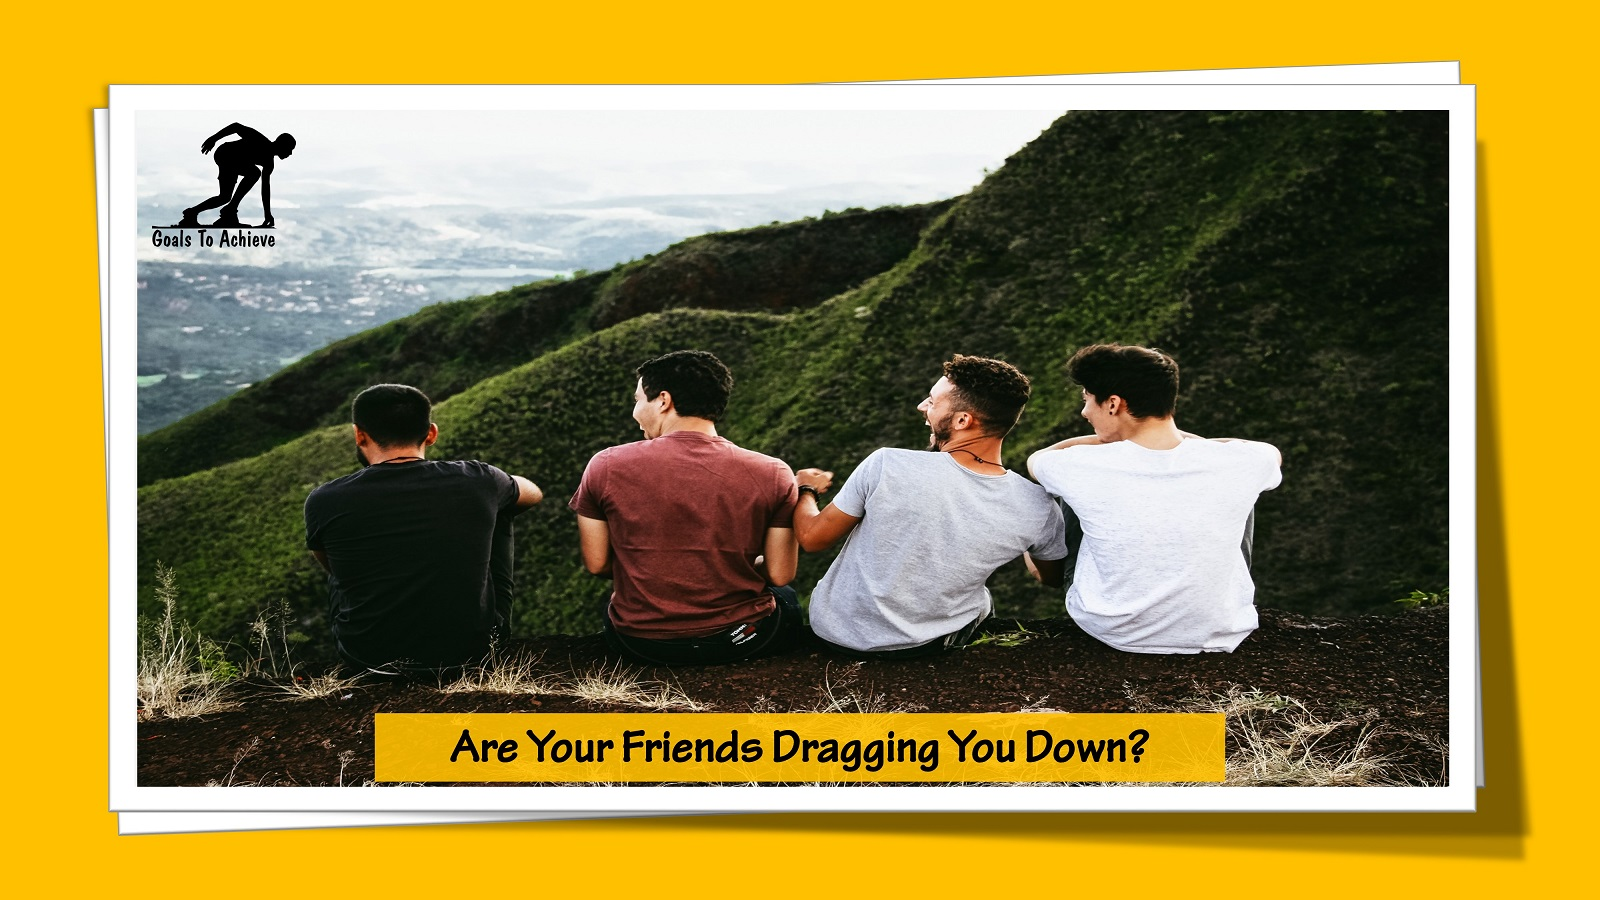 Are Your Friends Dragging You Down?